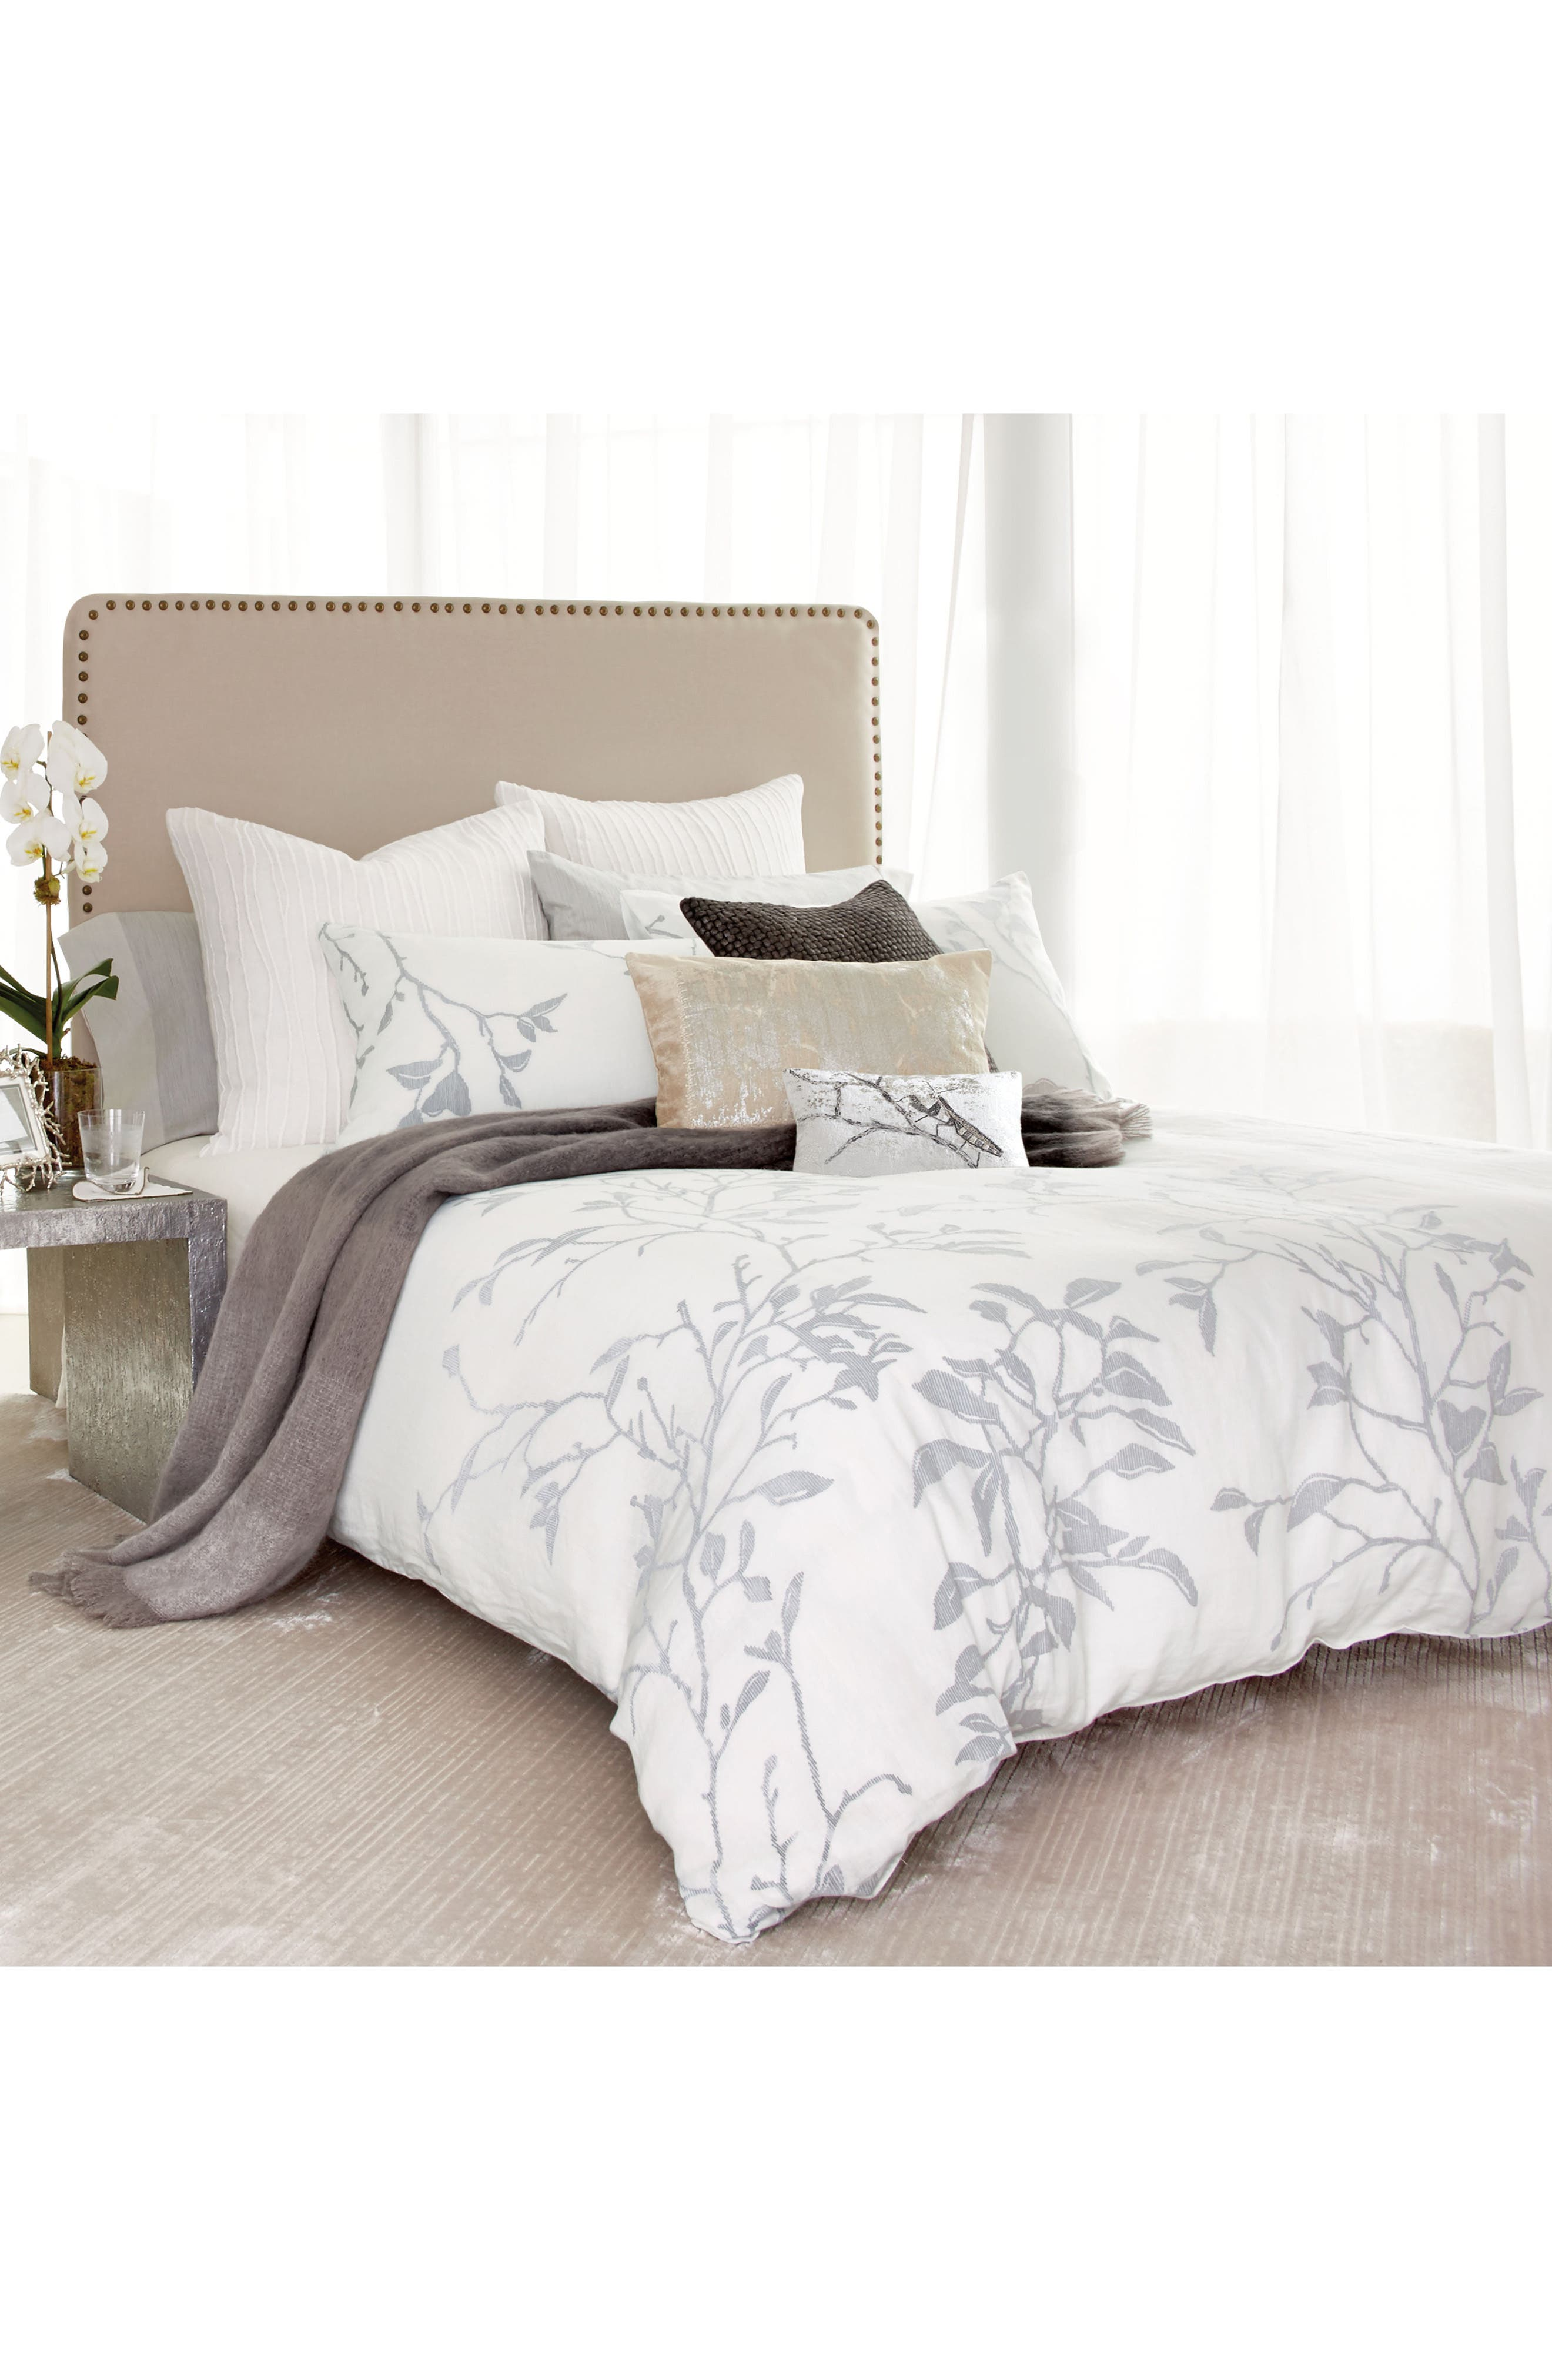 Branch Duvet Cover,                             Alternate thumbnail 7, color,